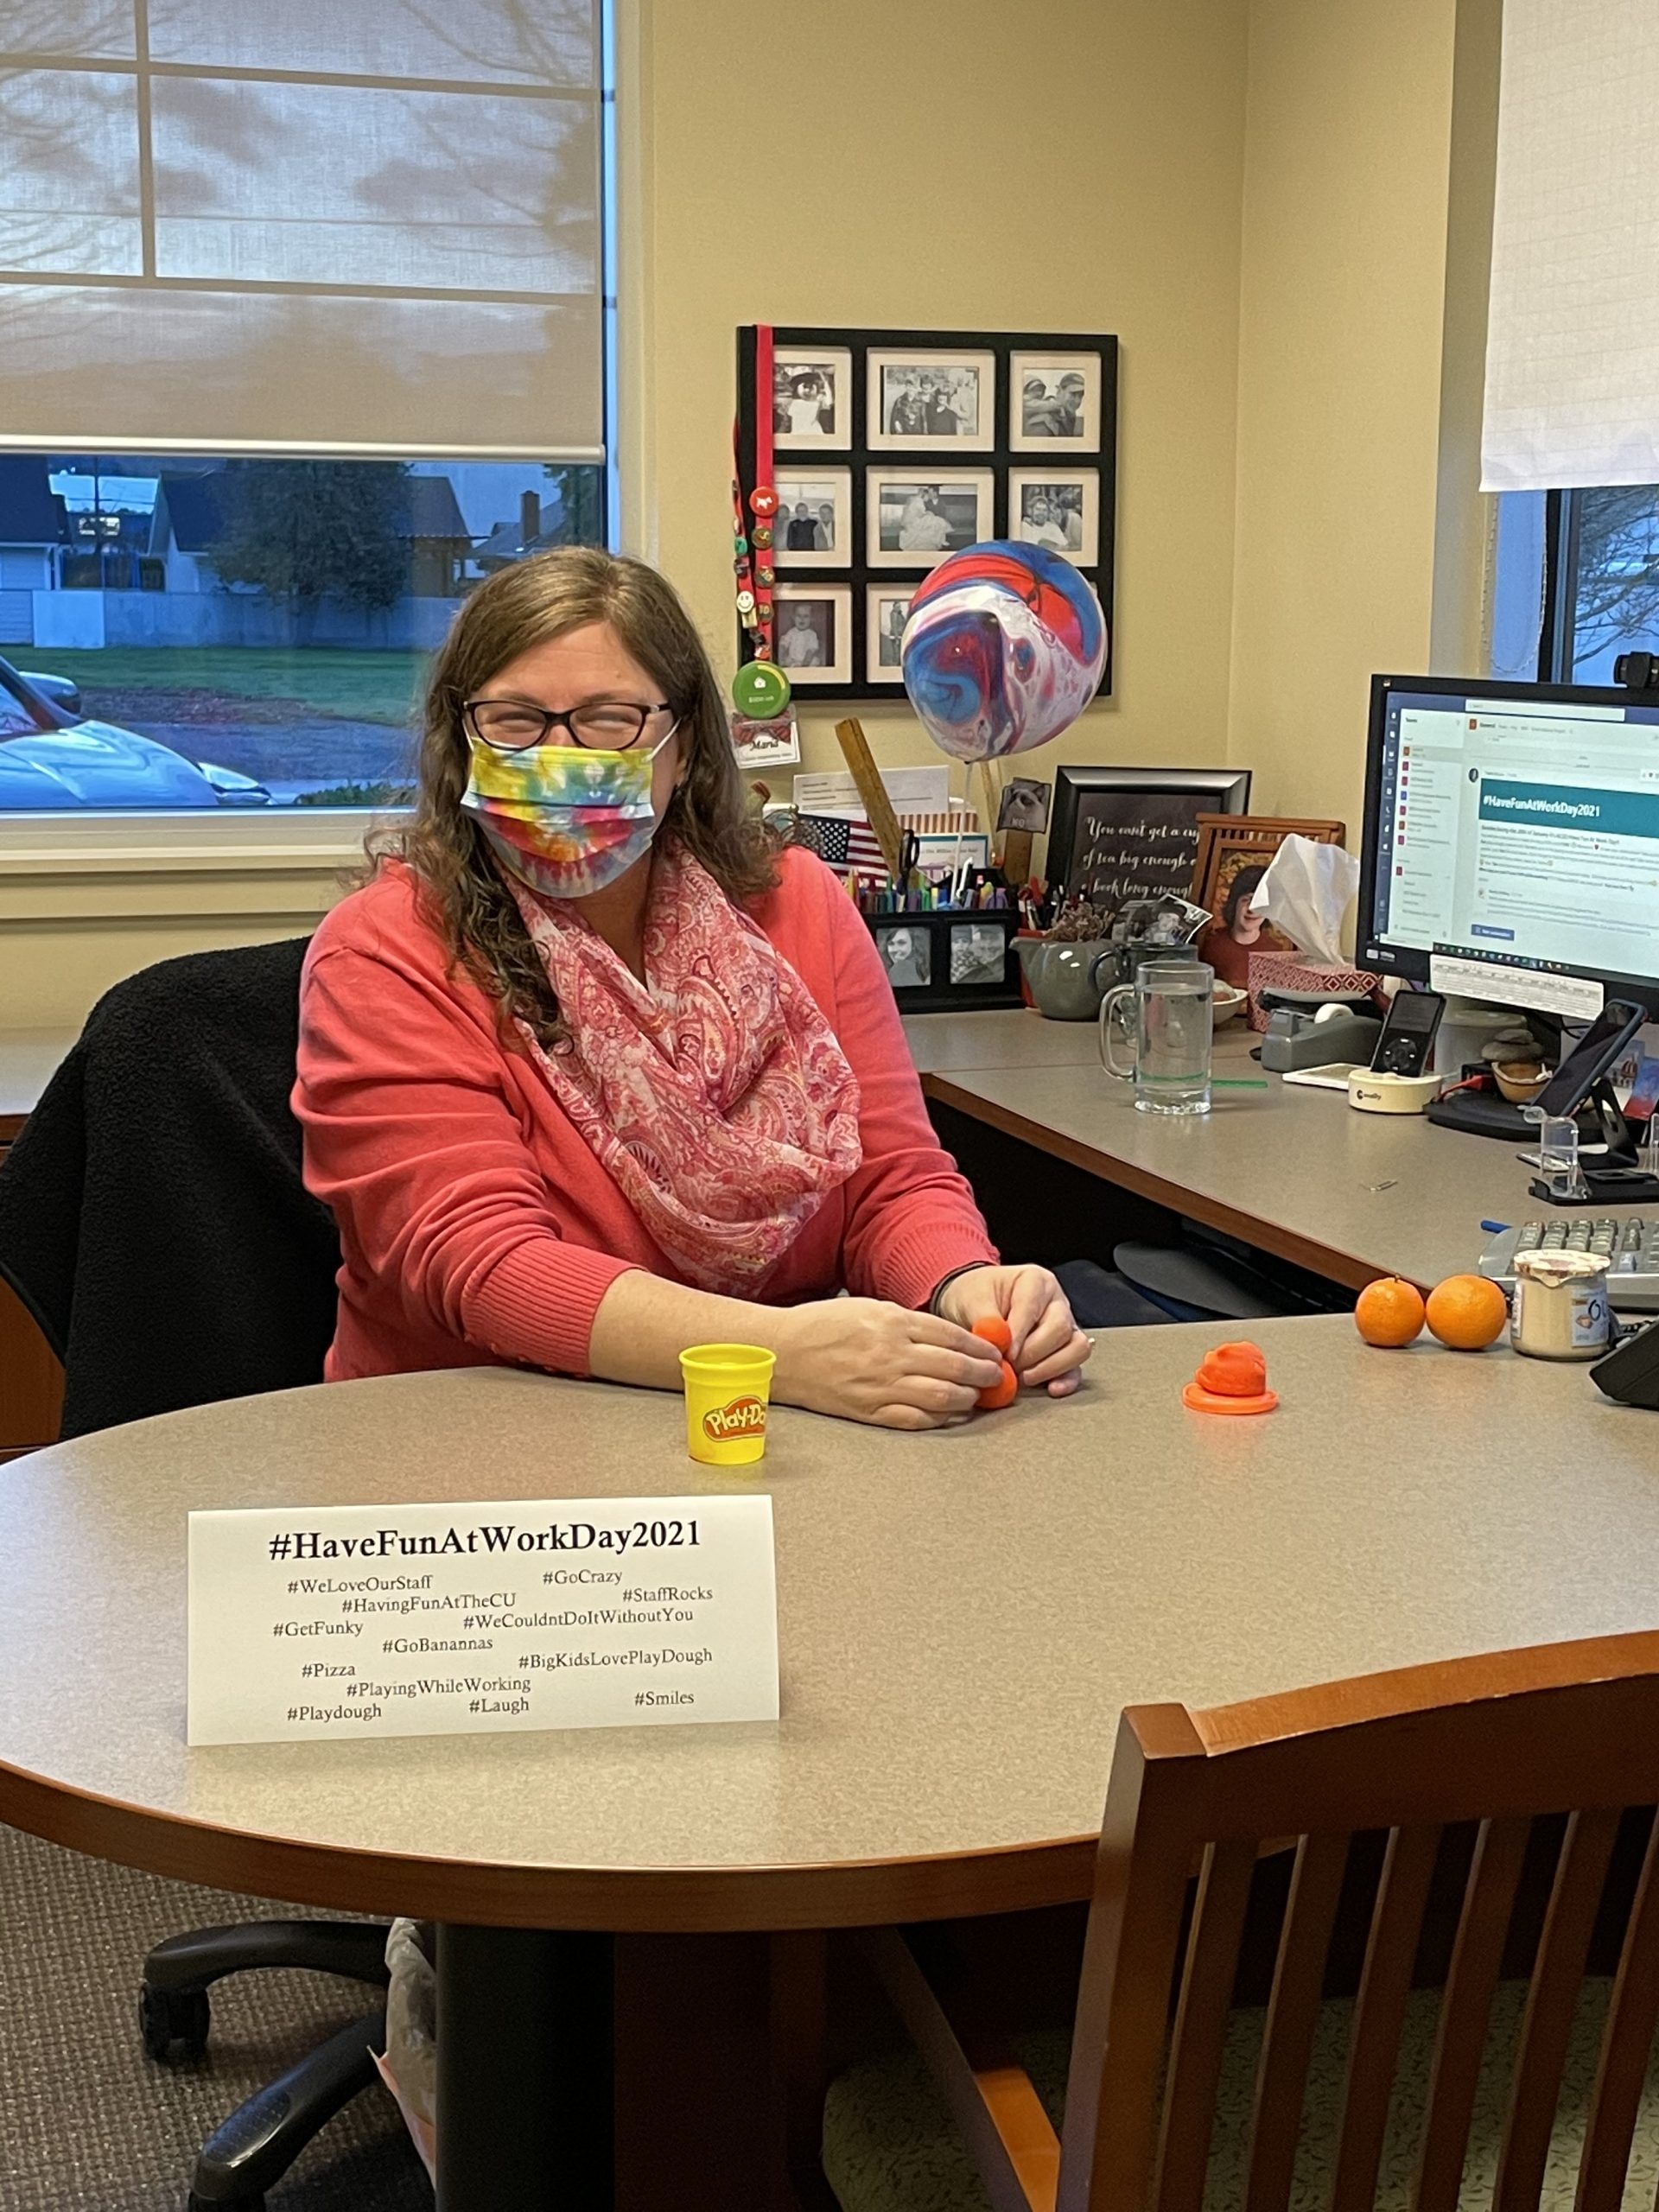 Credit union employee at desk on national have fun at work day